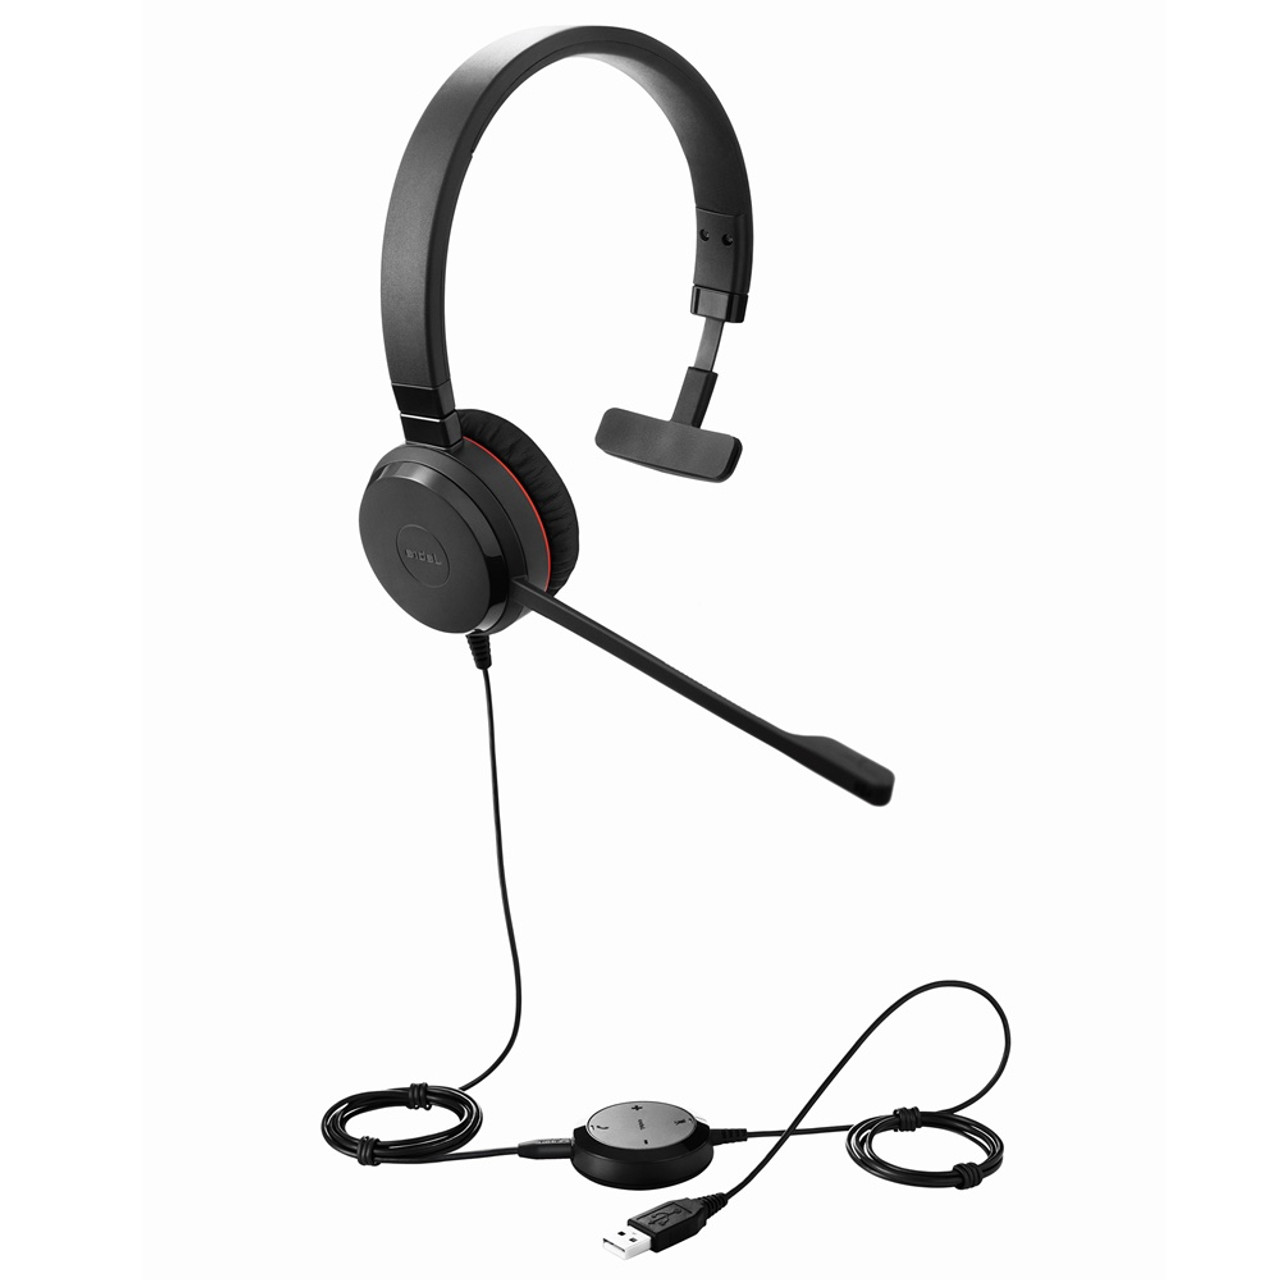 Jabra Evolve 30 Ii Uc Mono Usb Headset Certified For Unified Communications Voip Softphones Mobile Phones And Tablets 5393 829 309